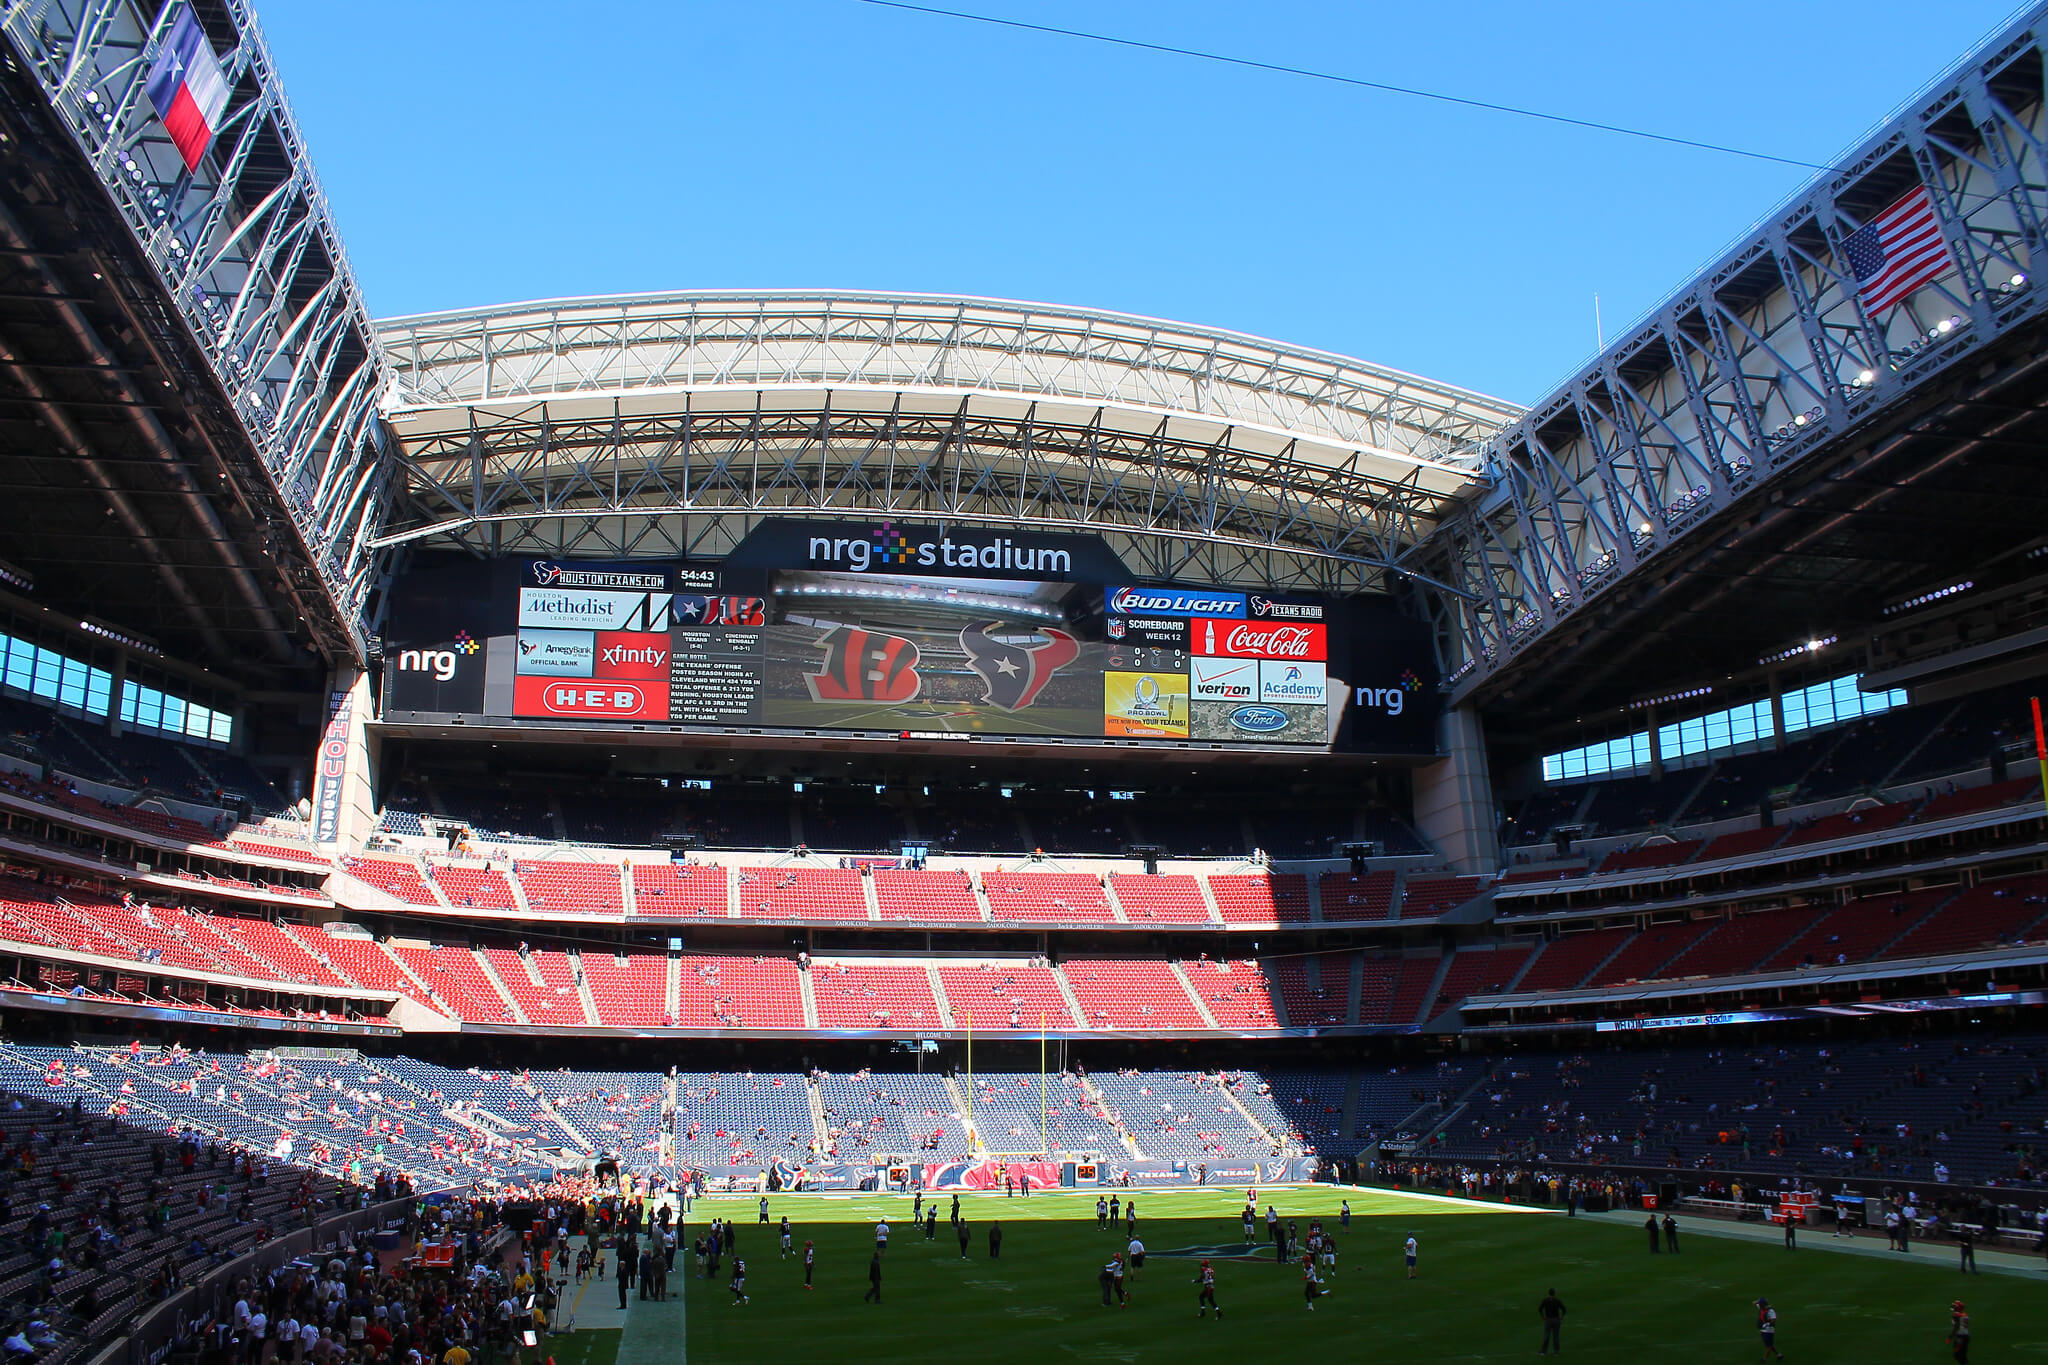 Houston Texans team Before kickoff in NRG Stadium